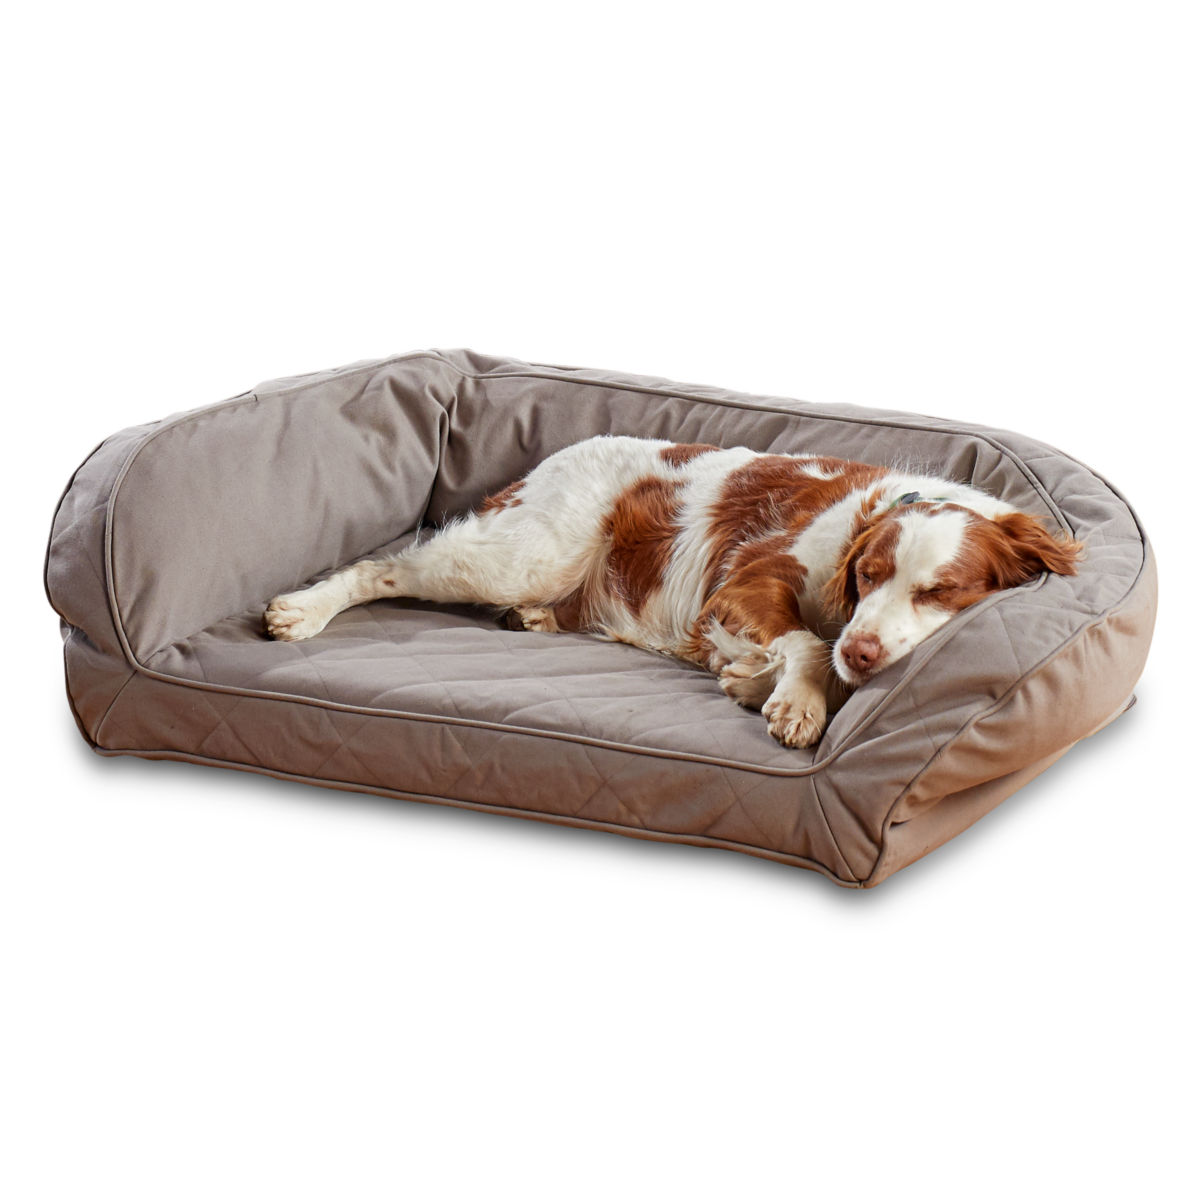 Earth-Friendly Bolster Dog Bed - KHAKIimage number 0